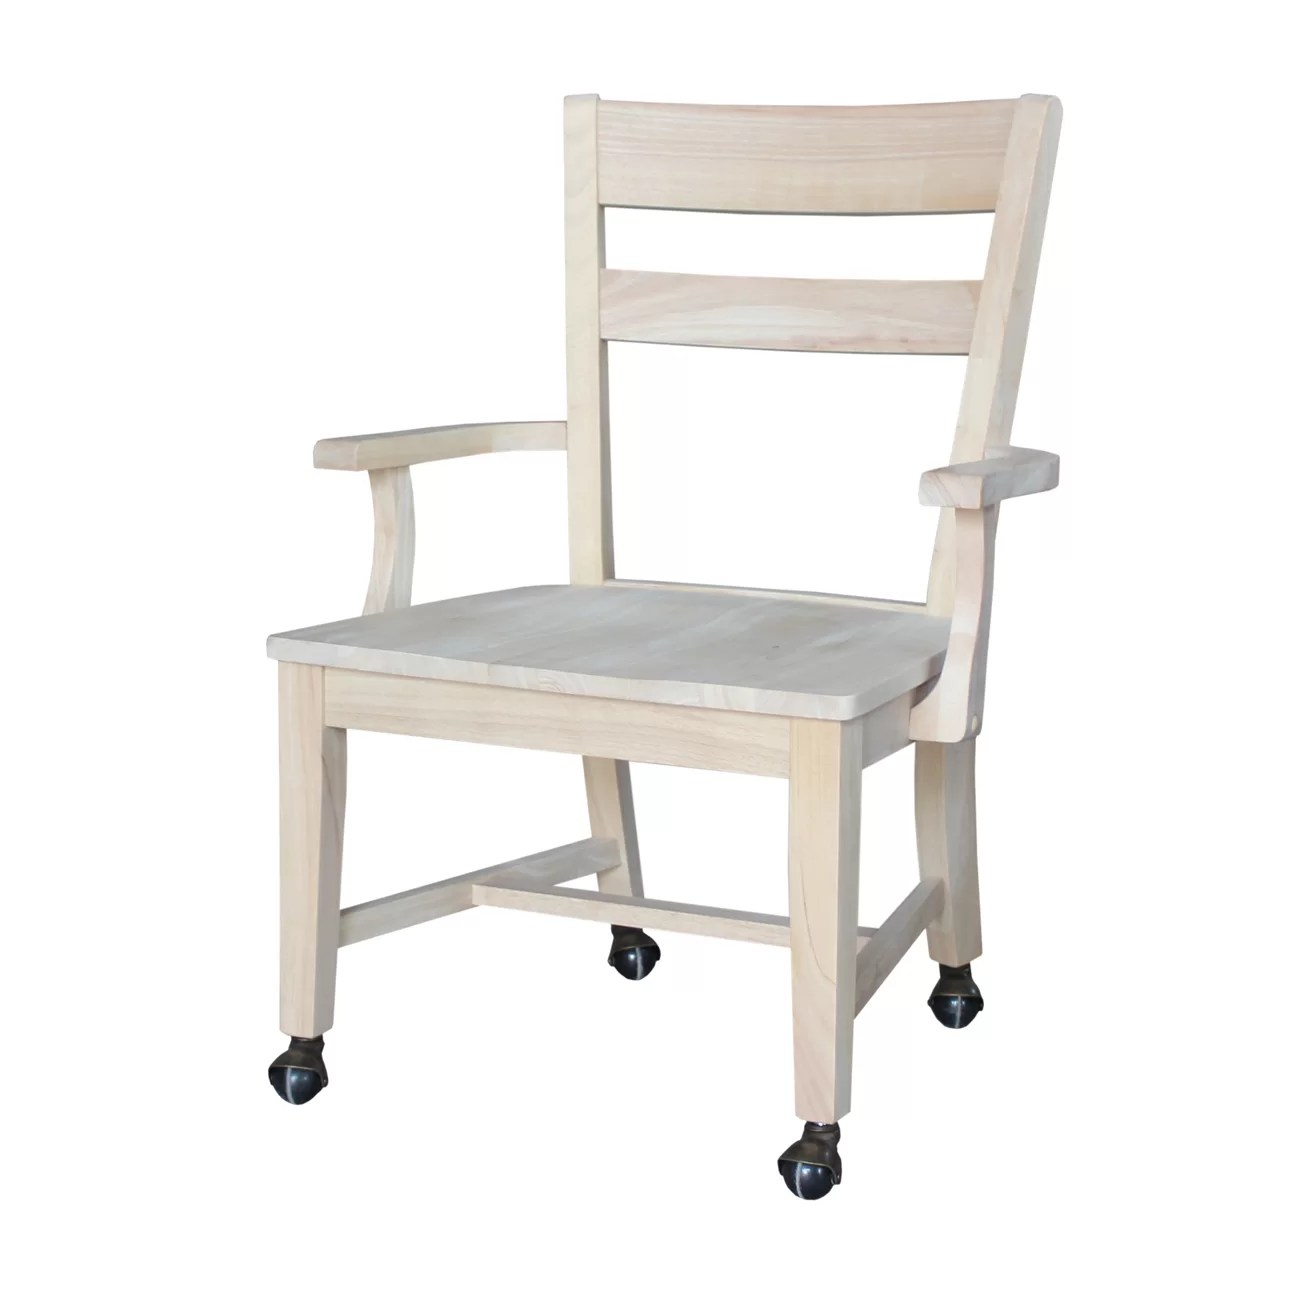 chair with desk arm zero gravity costco international concepts dining and reviews